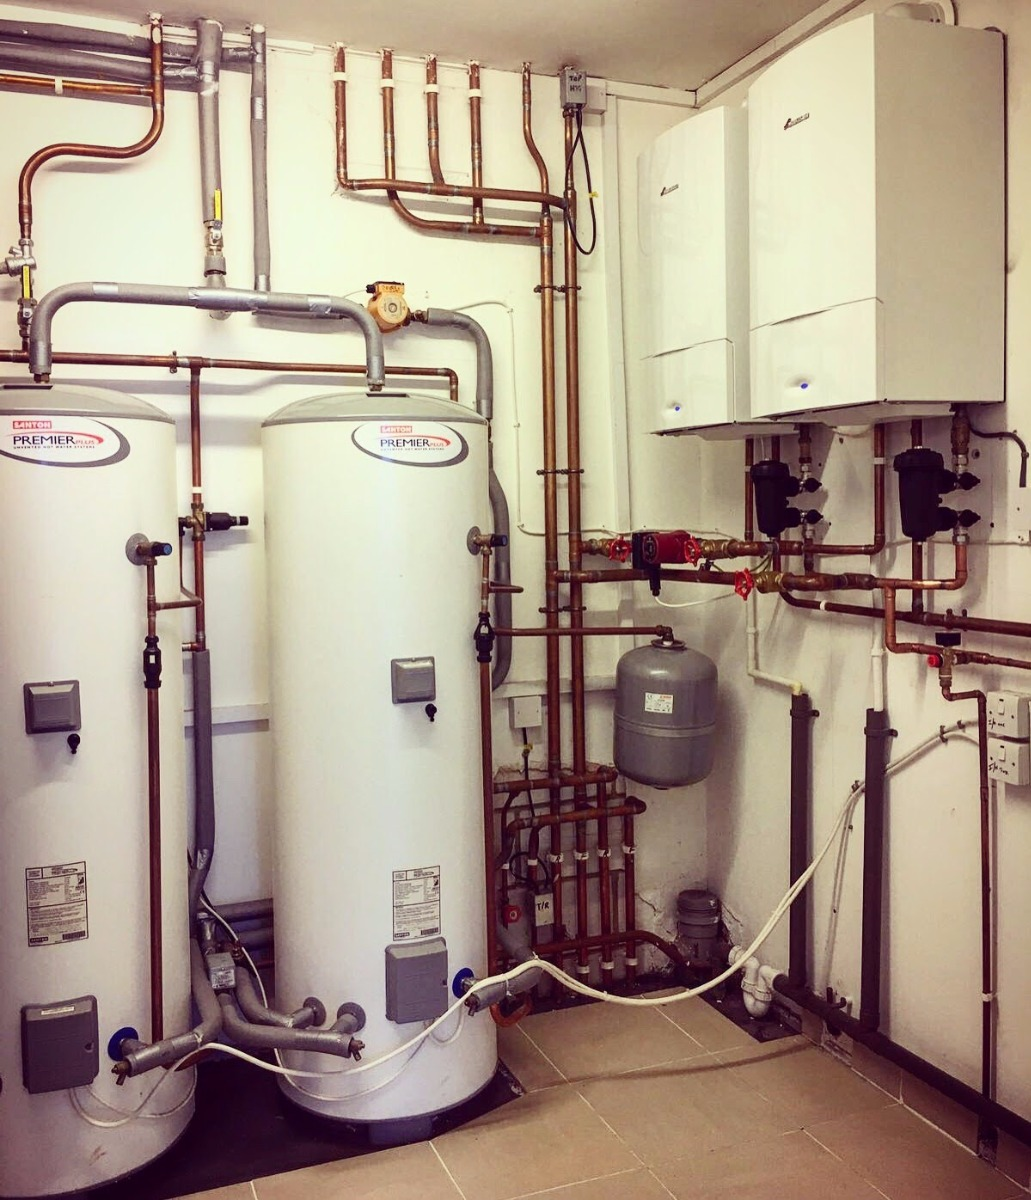 Boiler Installations, Large Residential, Surrey - www.boiler-pro.co.uk